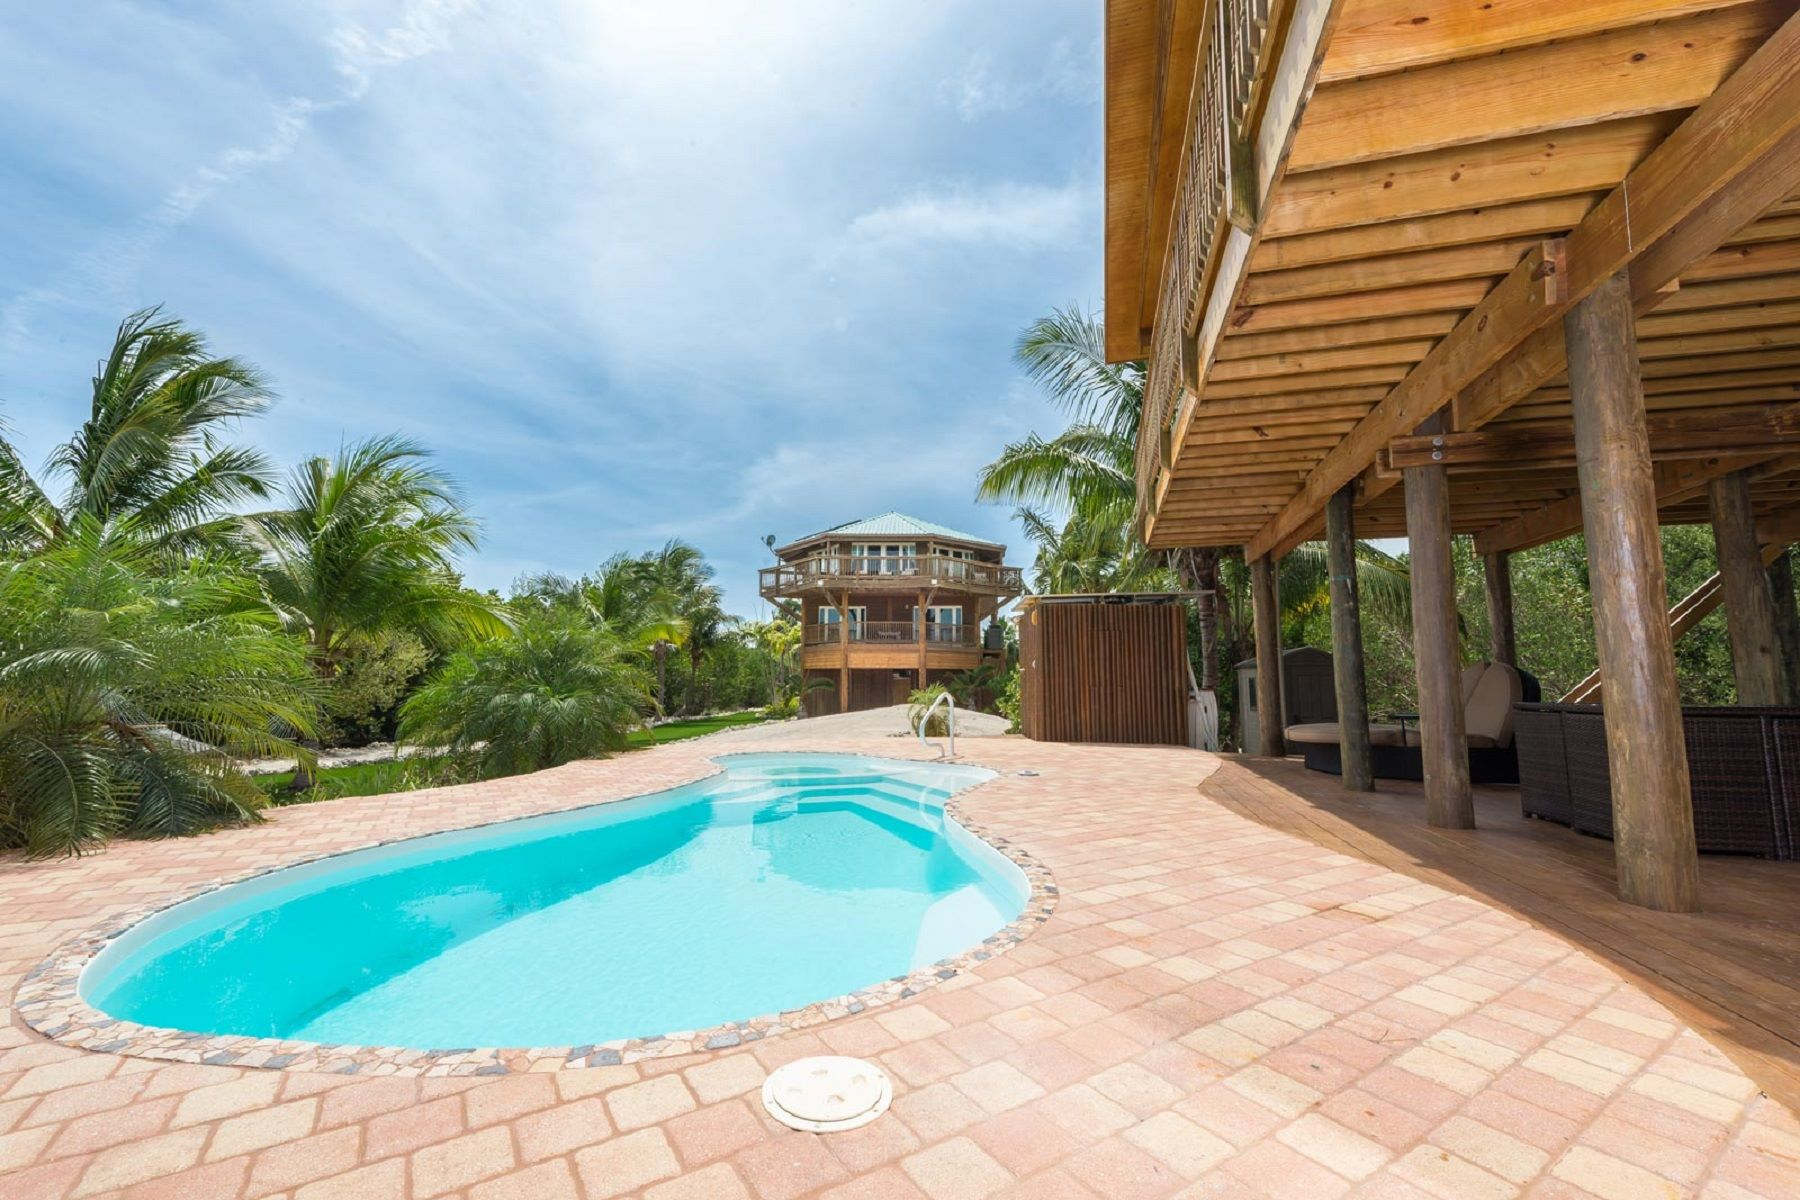 Additional photo for property listing at Relax to the Tune of Melody Key 1 Melody Key Summerland Key, Florida 33042 United States